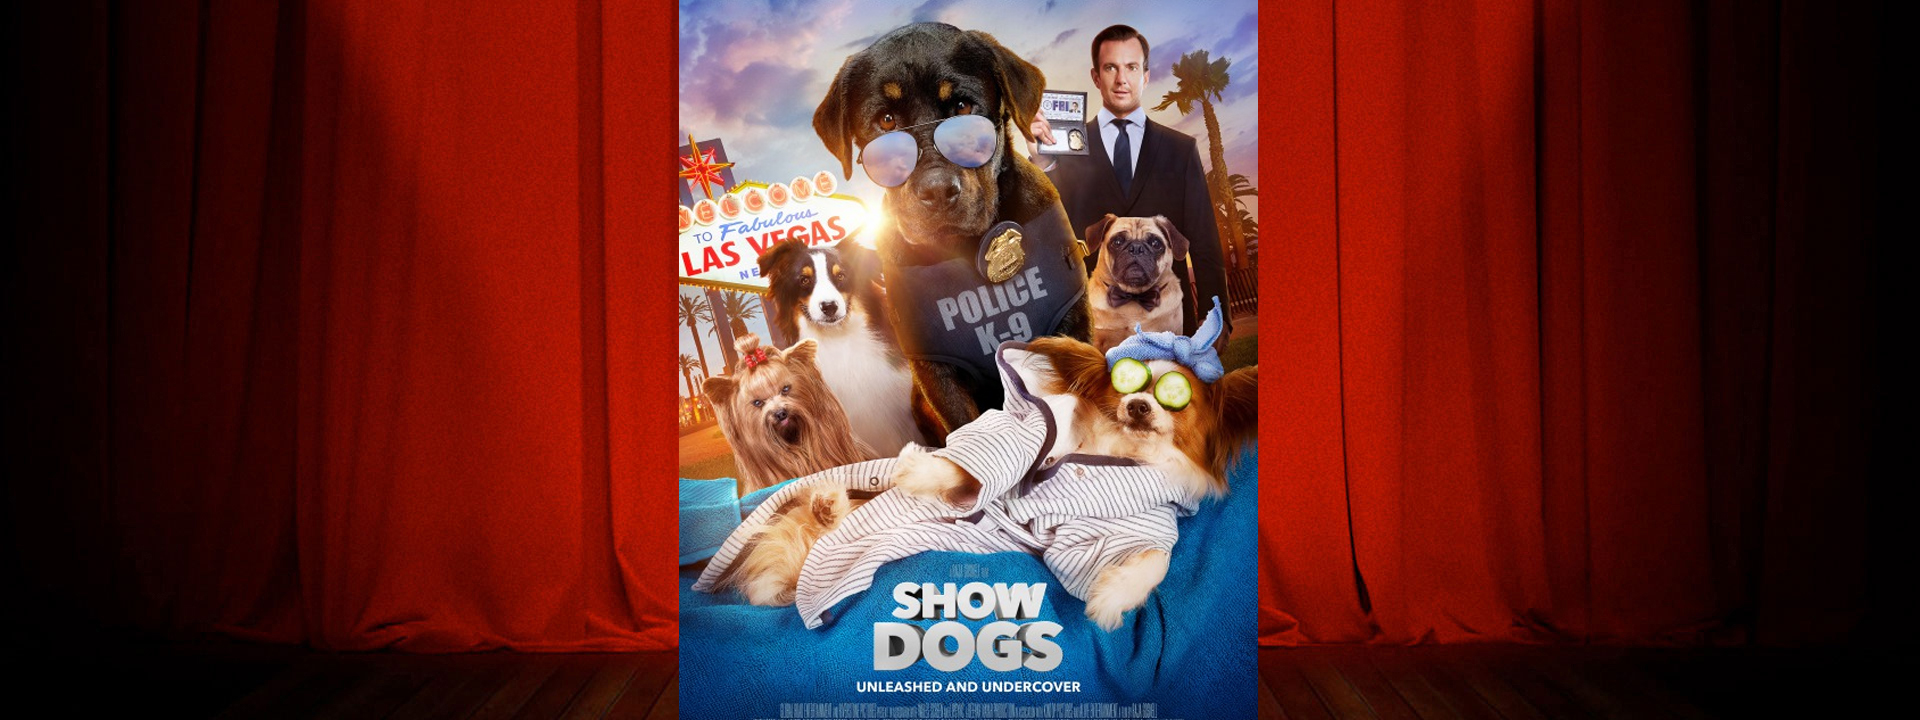 Show Dogs - Now Playing